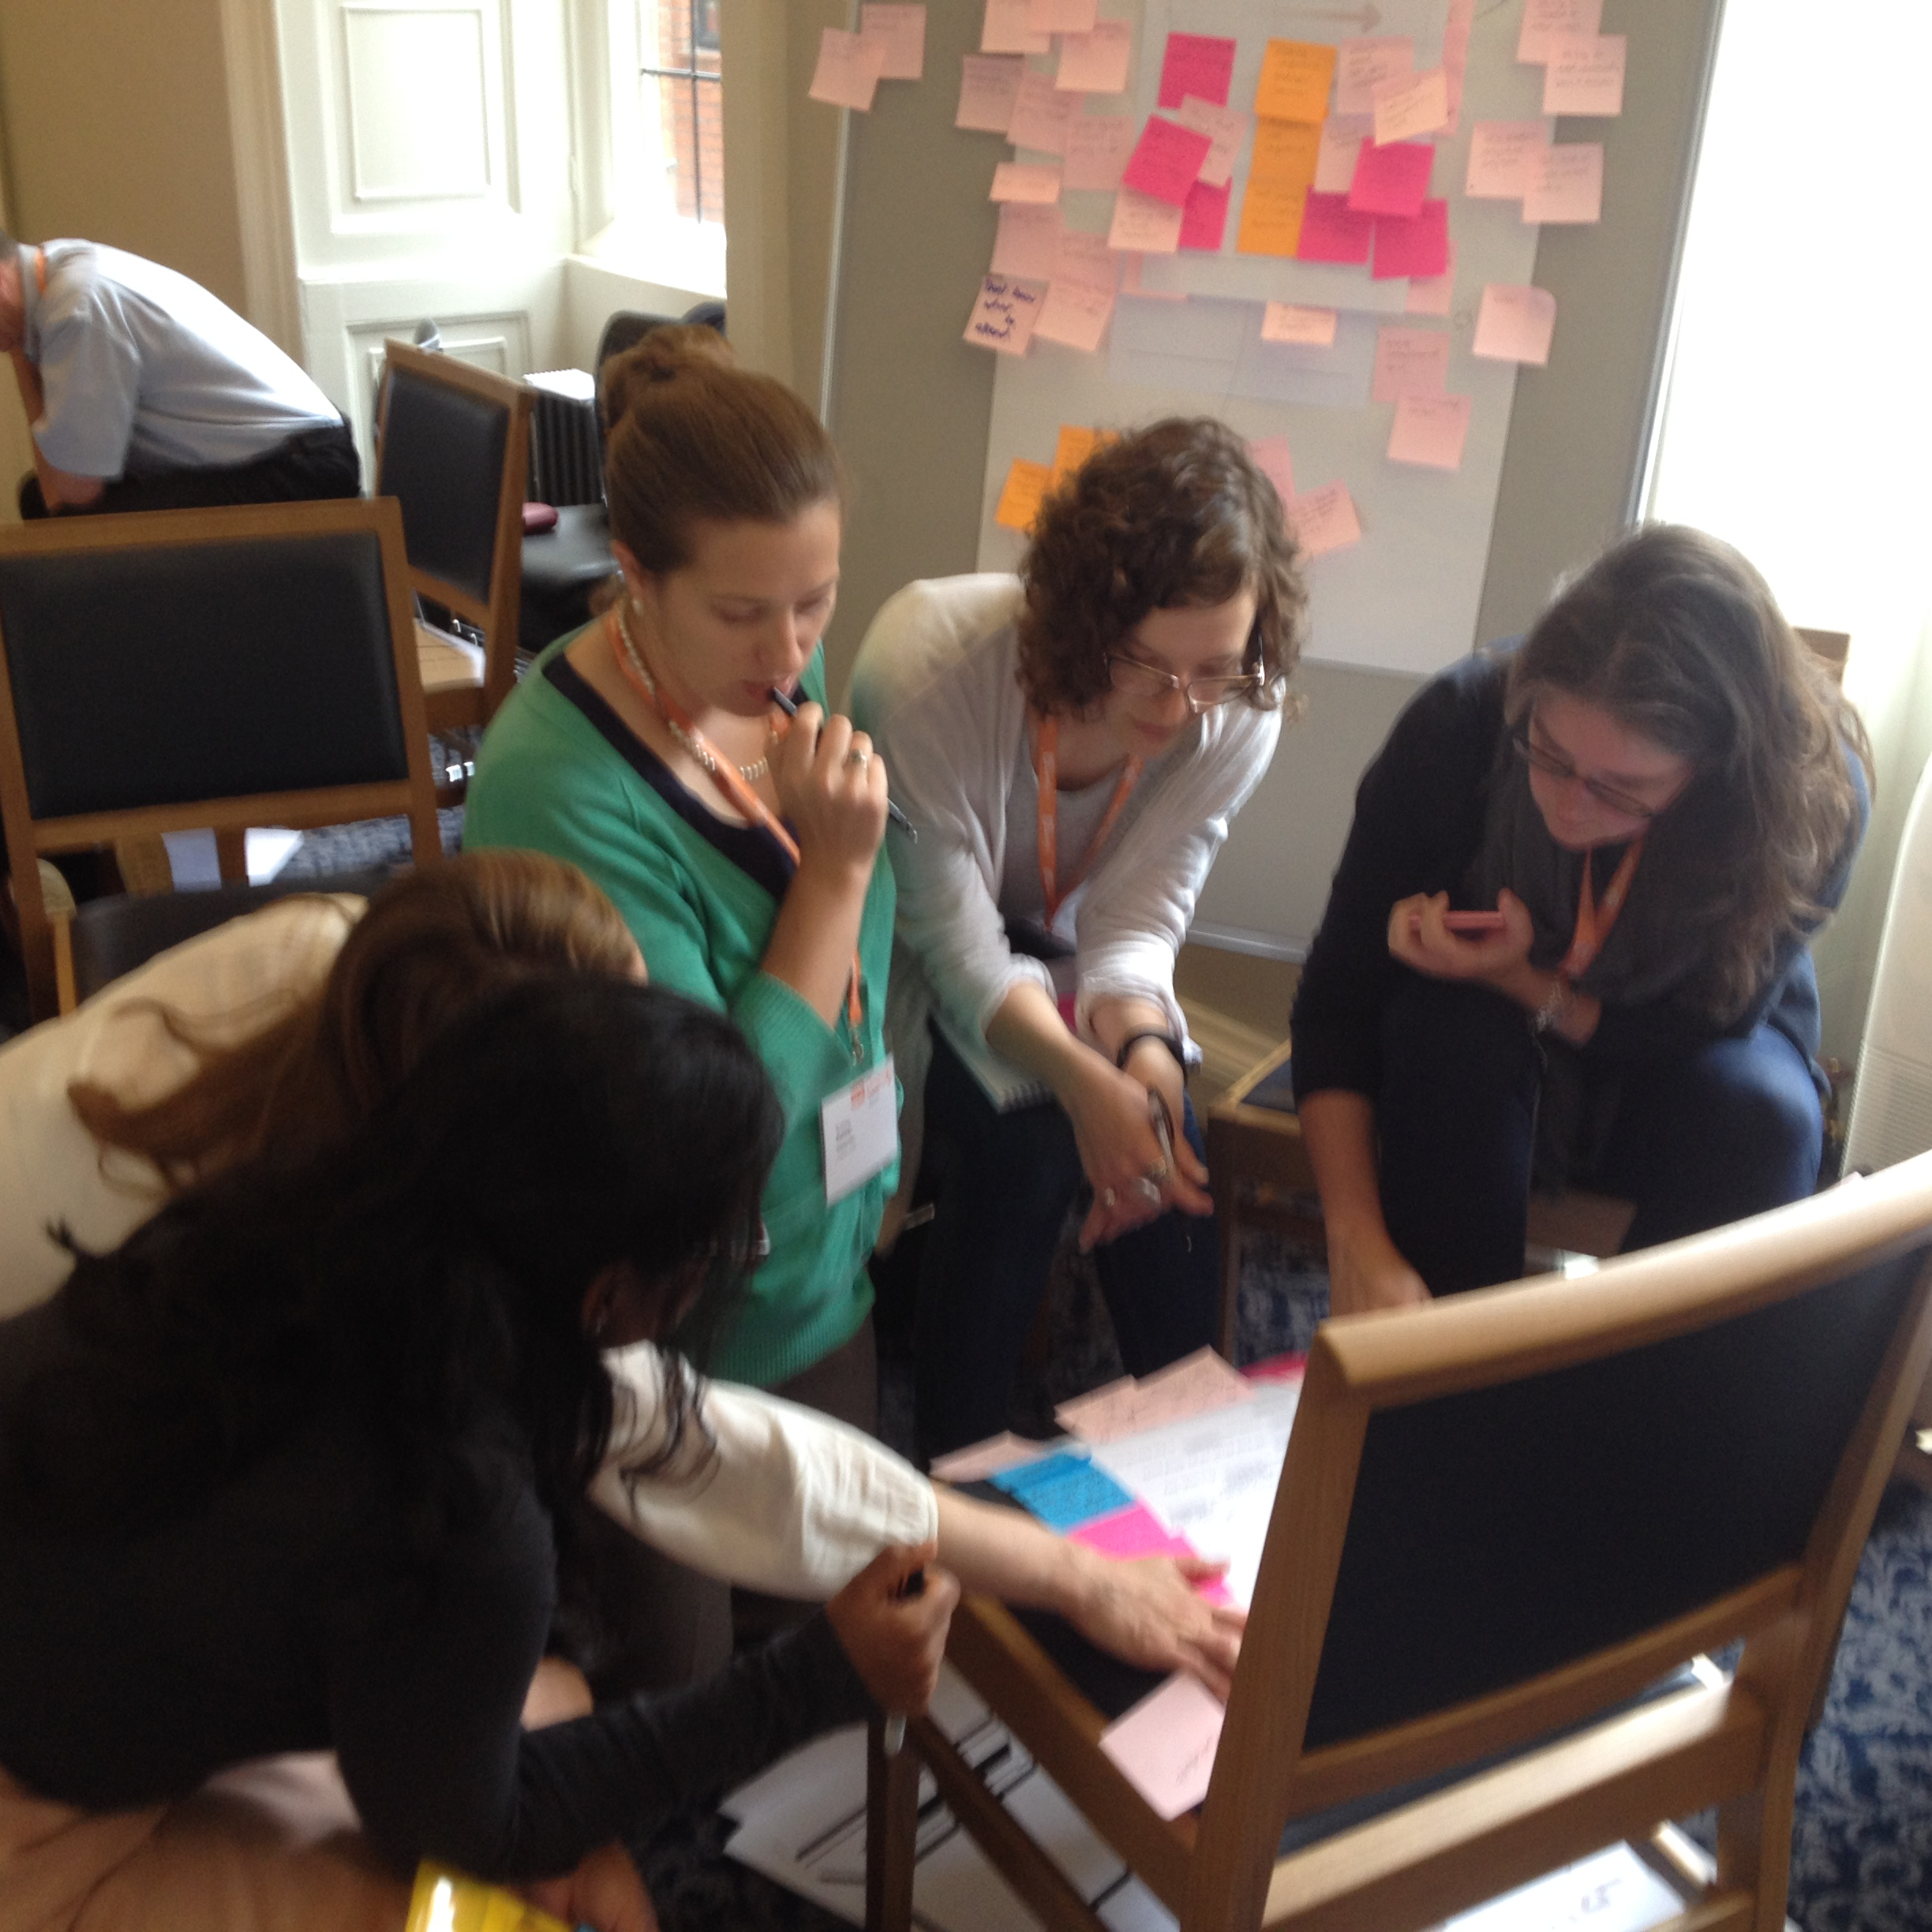 Participants discuss their challenges and tools in sharing UX insights